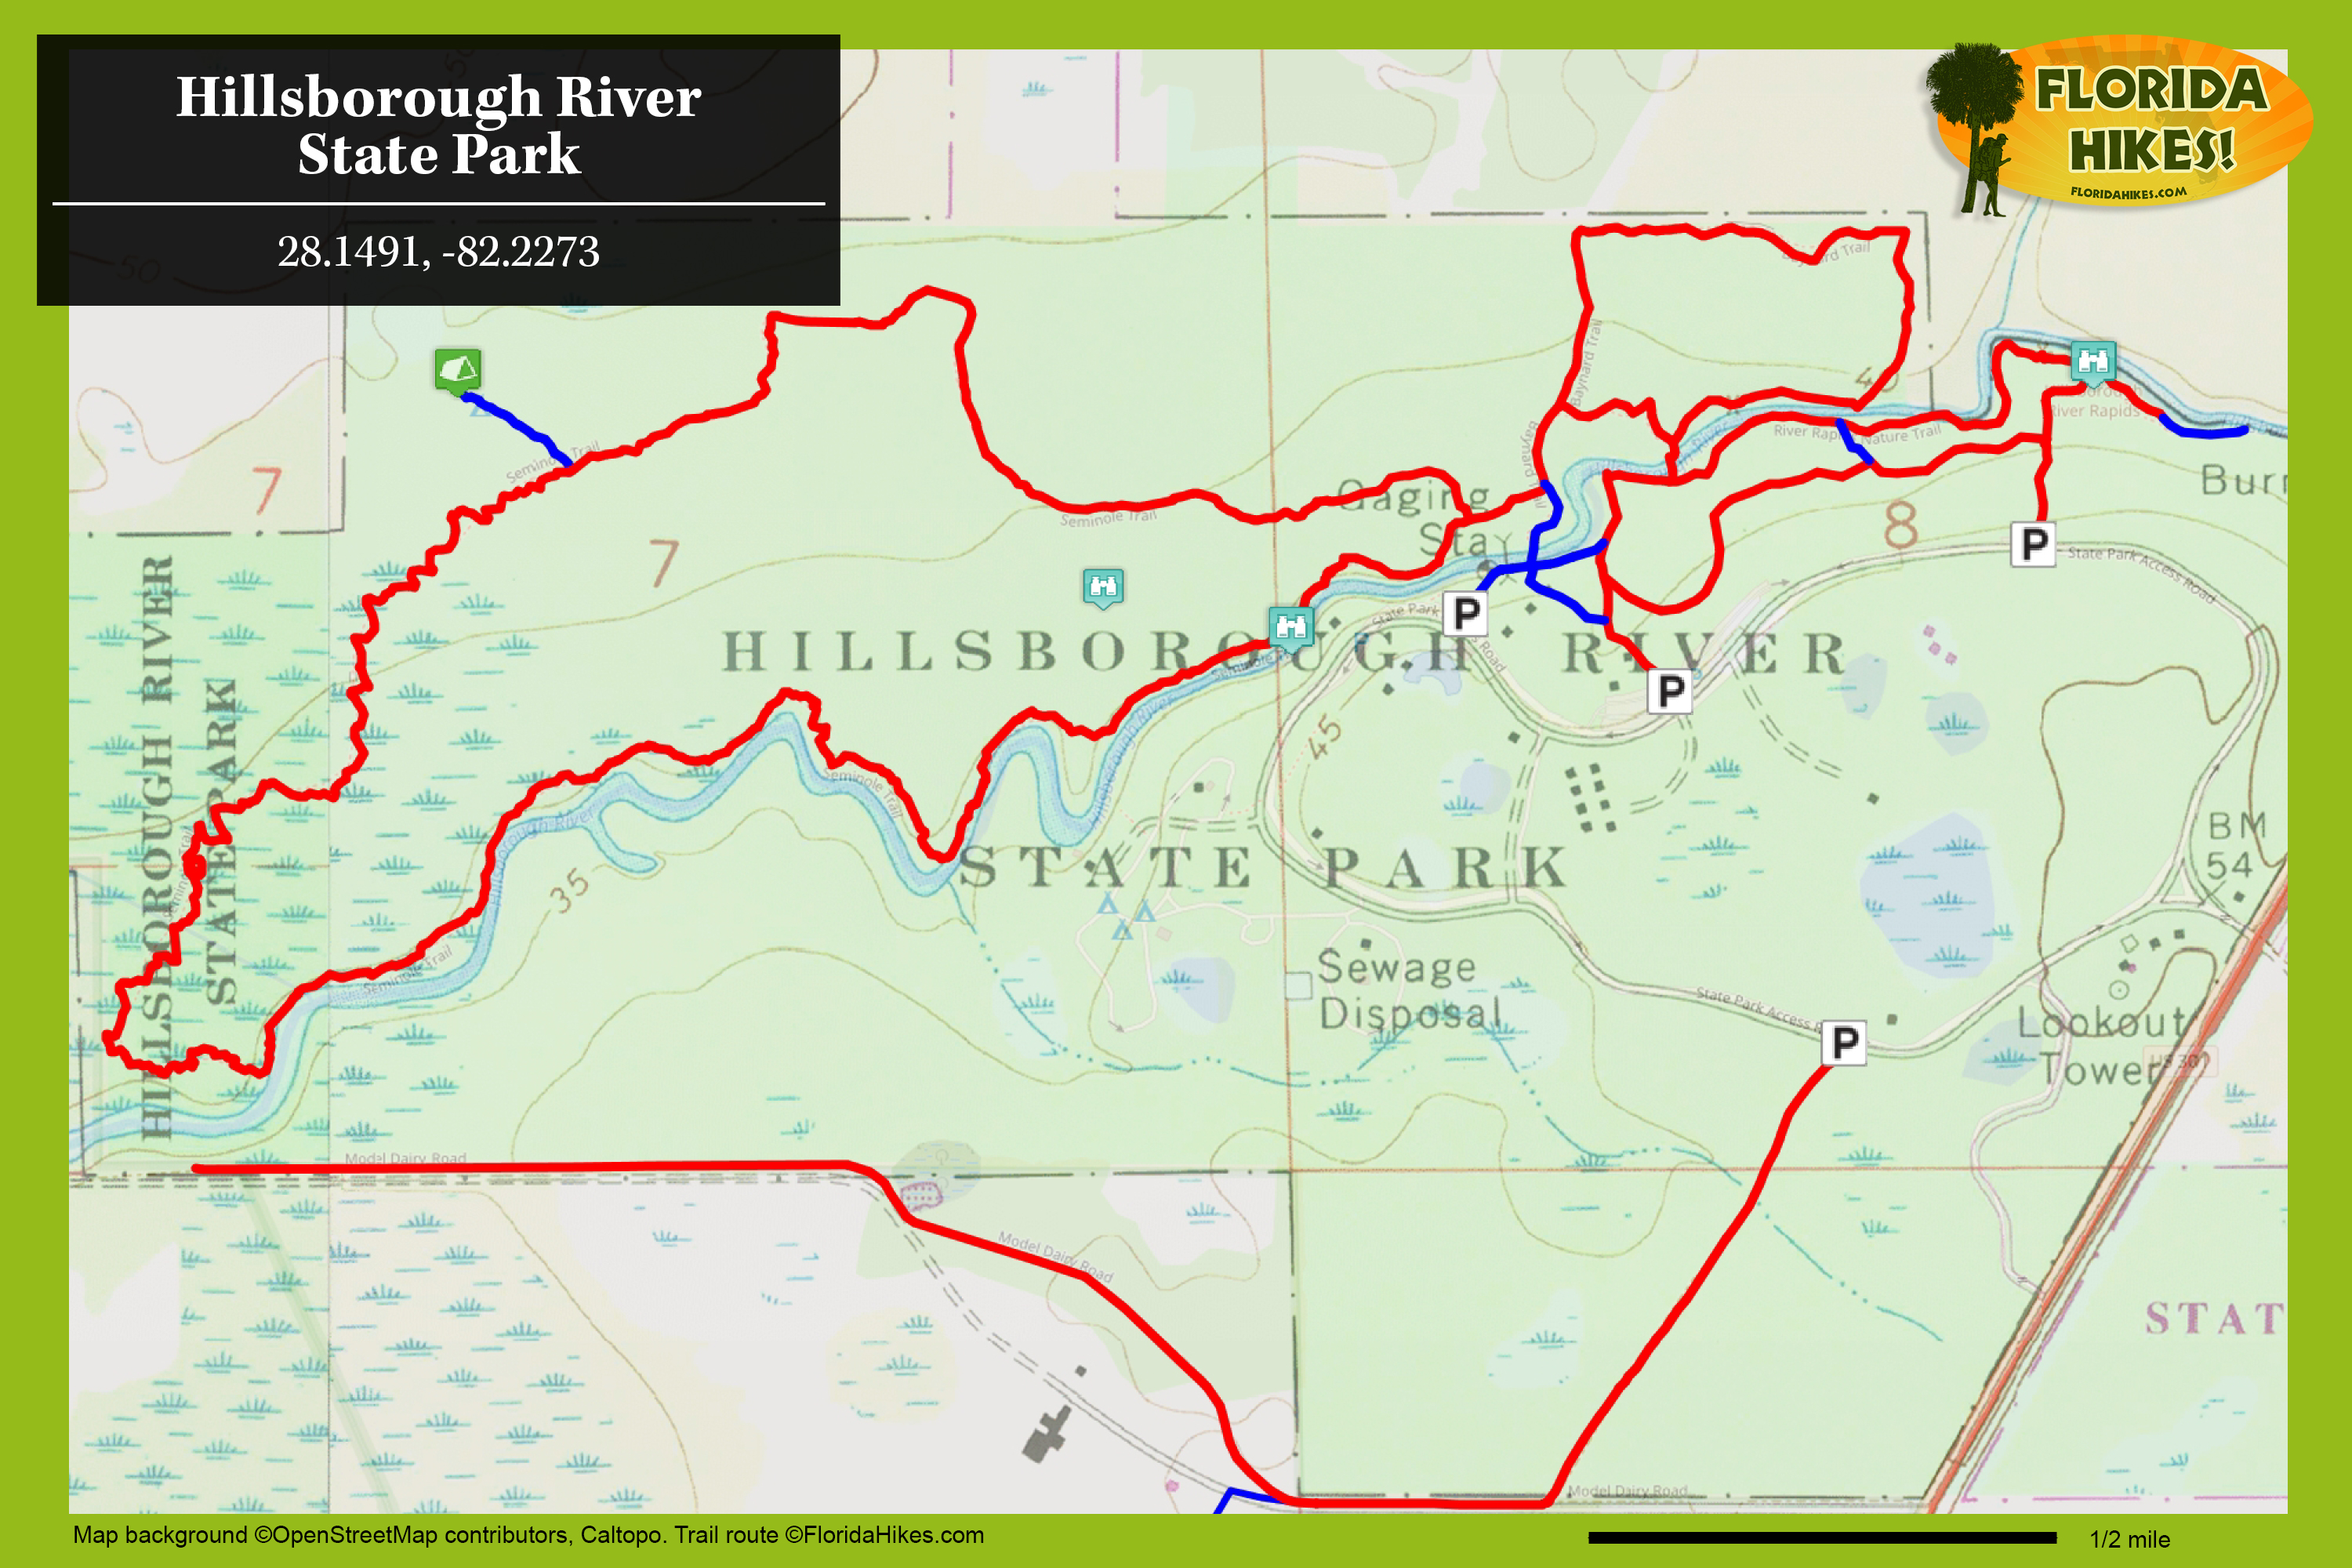 Hillsborough River Hiking Trails | Florida Hikes! on map of brevard county fl, map of indian river county fl, map of new york county ny, map of hillsborough county in florida, map of pasco county fl, map of st lucie county fl, map of manatee county fl, map of greater tampa, map of hillsborough county new hampshire, map of san francisco county ca, map of collier county fl, map of santa rosa county fl, map of jackson county fl, map of glades county fl, map of duval county fl, map of sumter county fl, map of pinellas county fl, map of lake county fl, map of polk county fl, map of st. johns county fl,